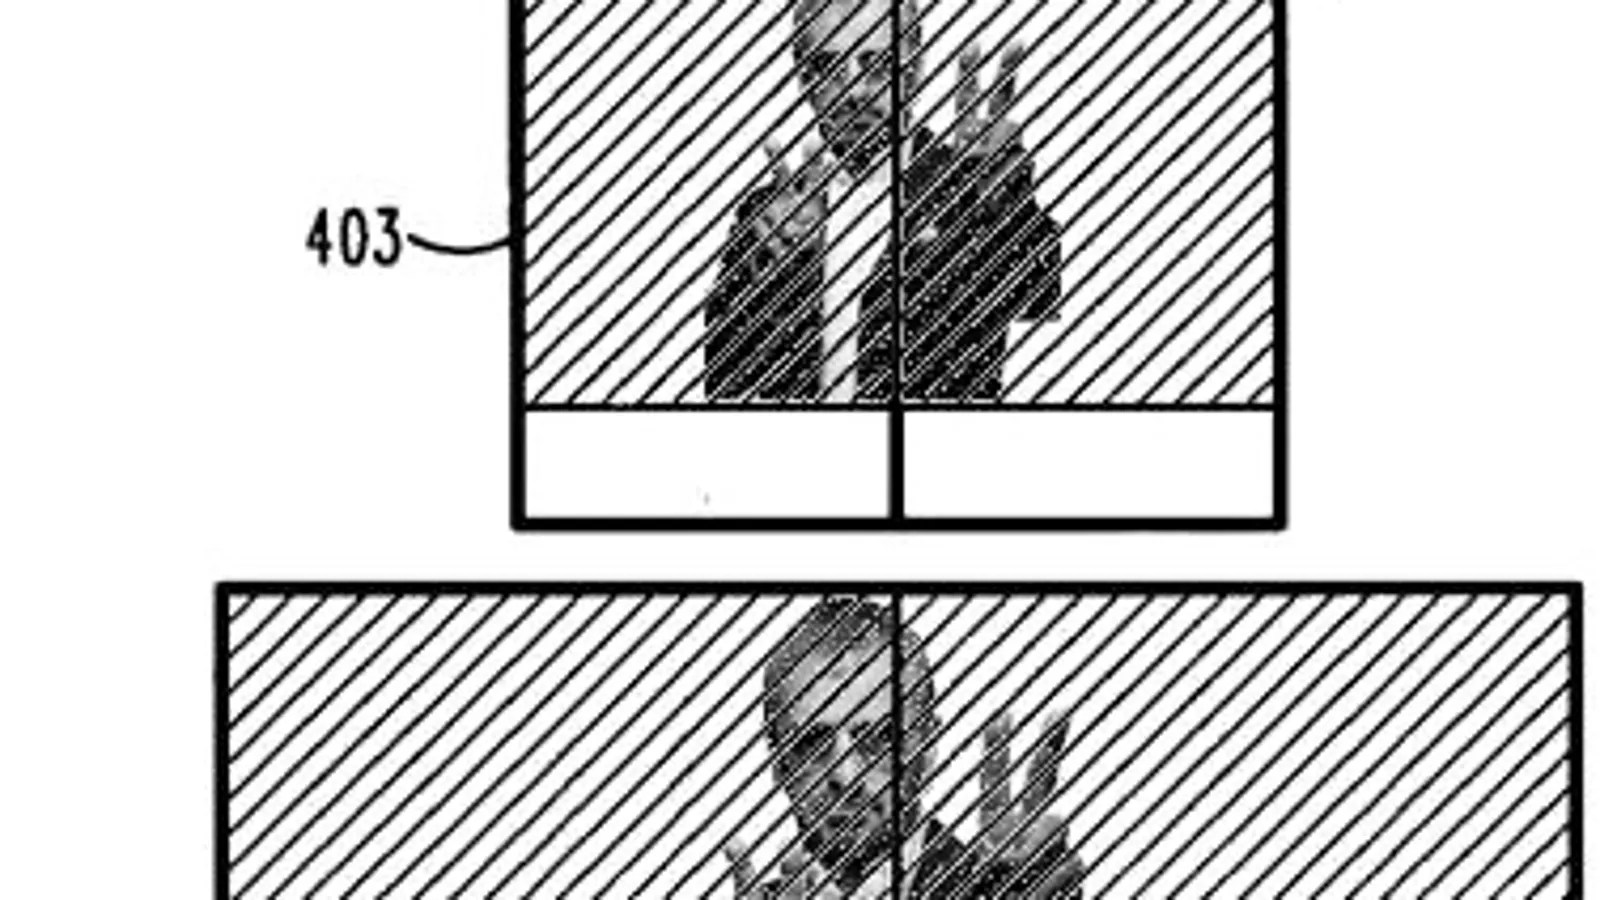 Motorola Wants to Patent Combining Several Phones Into A